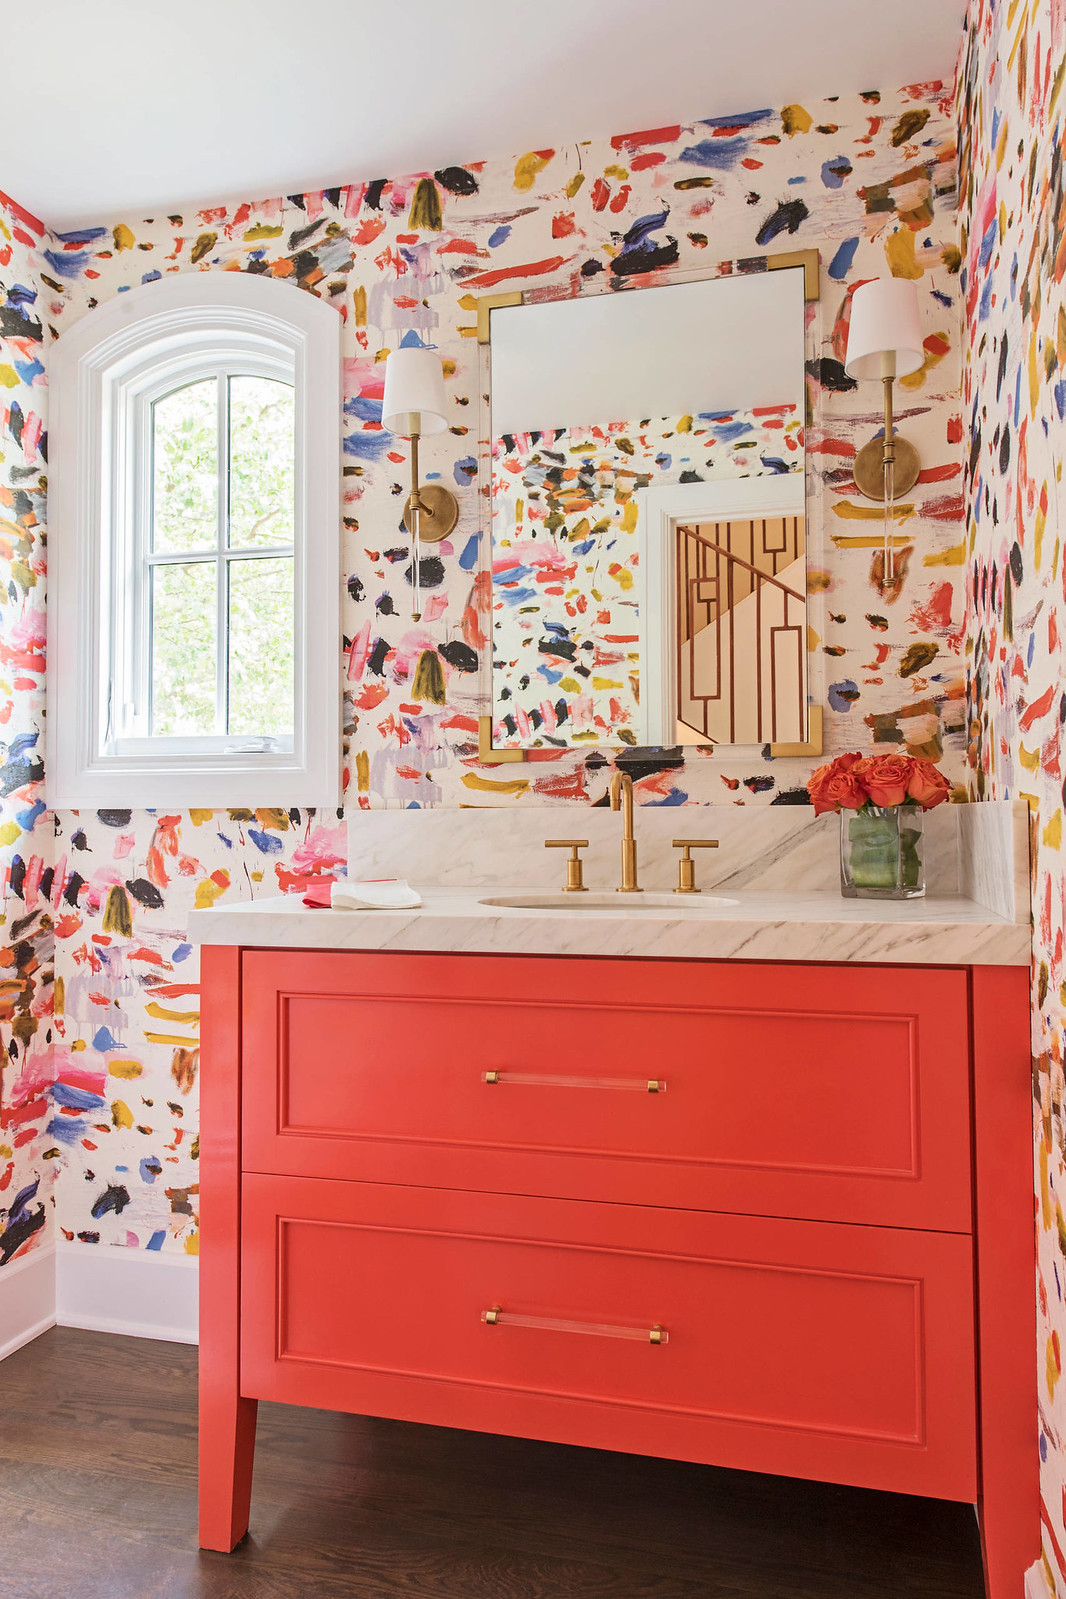 Colorful Bathroom Inspiration | Paint Swatch Wallpaper | Wallpapered Bathroom Ideas | Coral Bathroom Vanity | Vibrant Color Powder Room